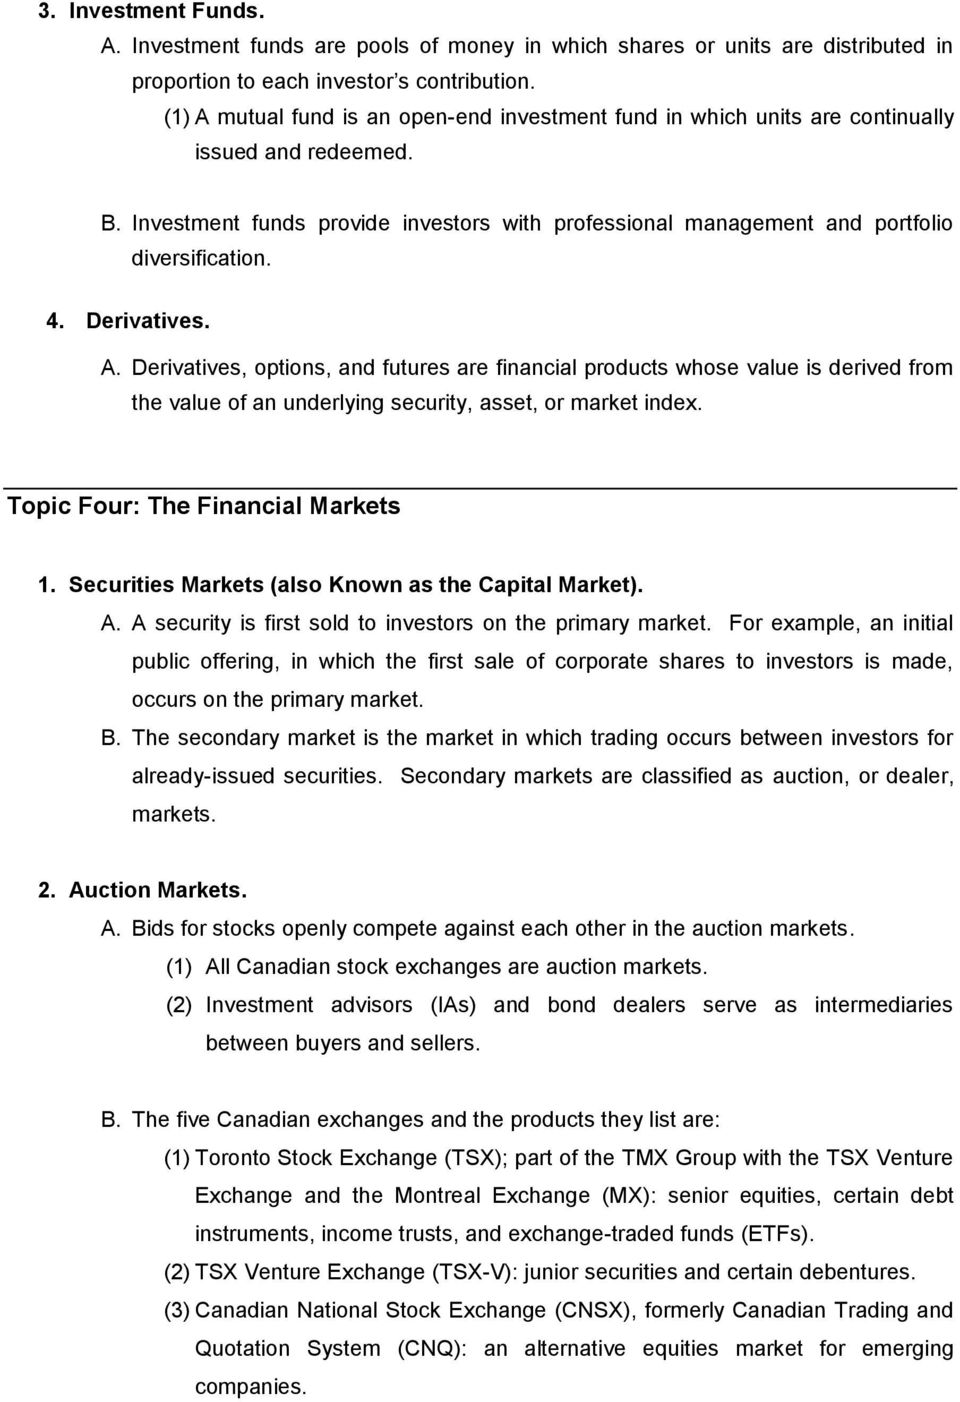 CHAPTER 1: THE CAPITAL MARKET - PDF